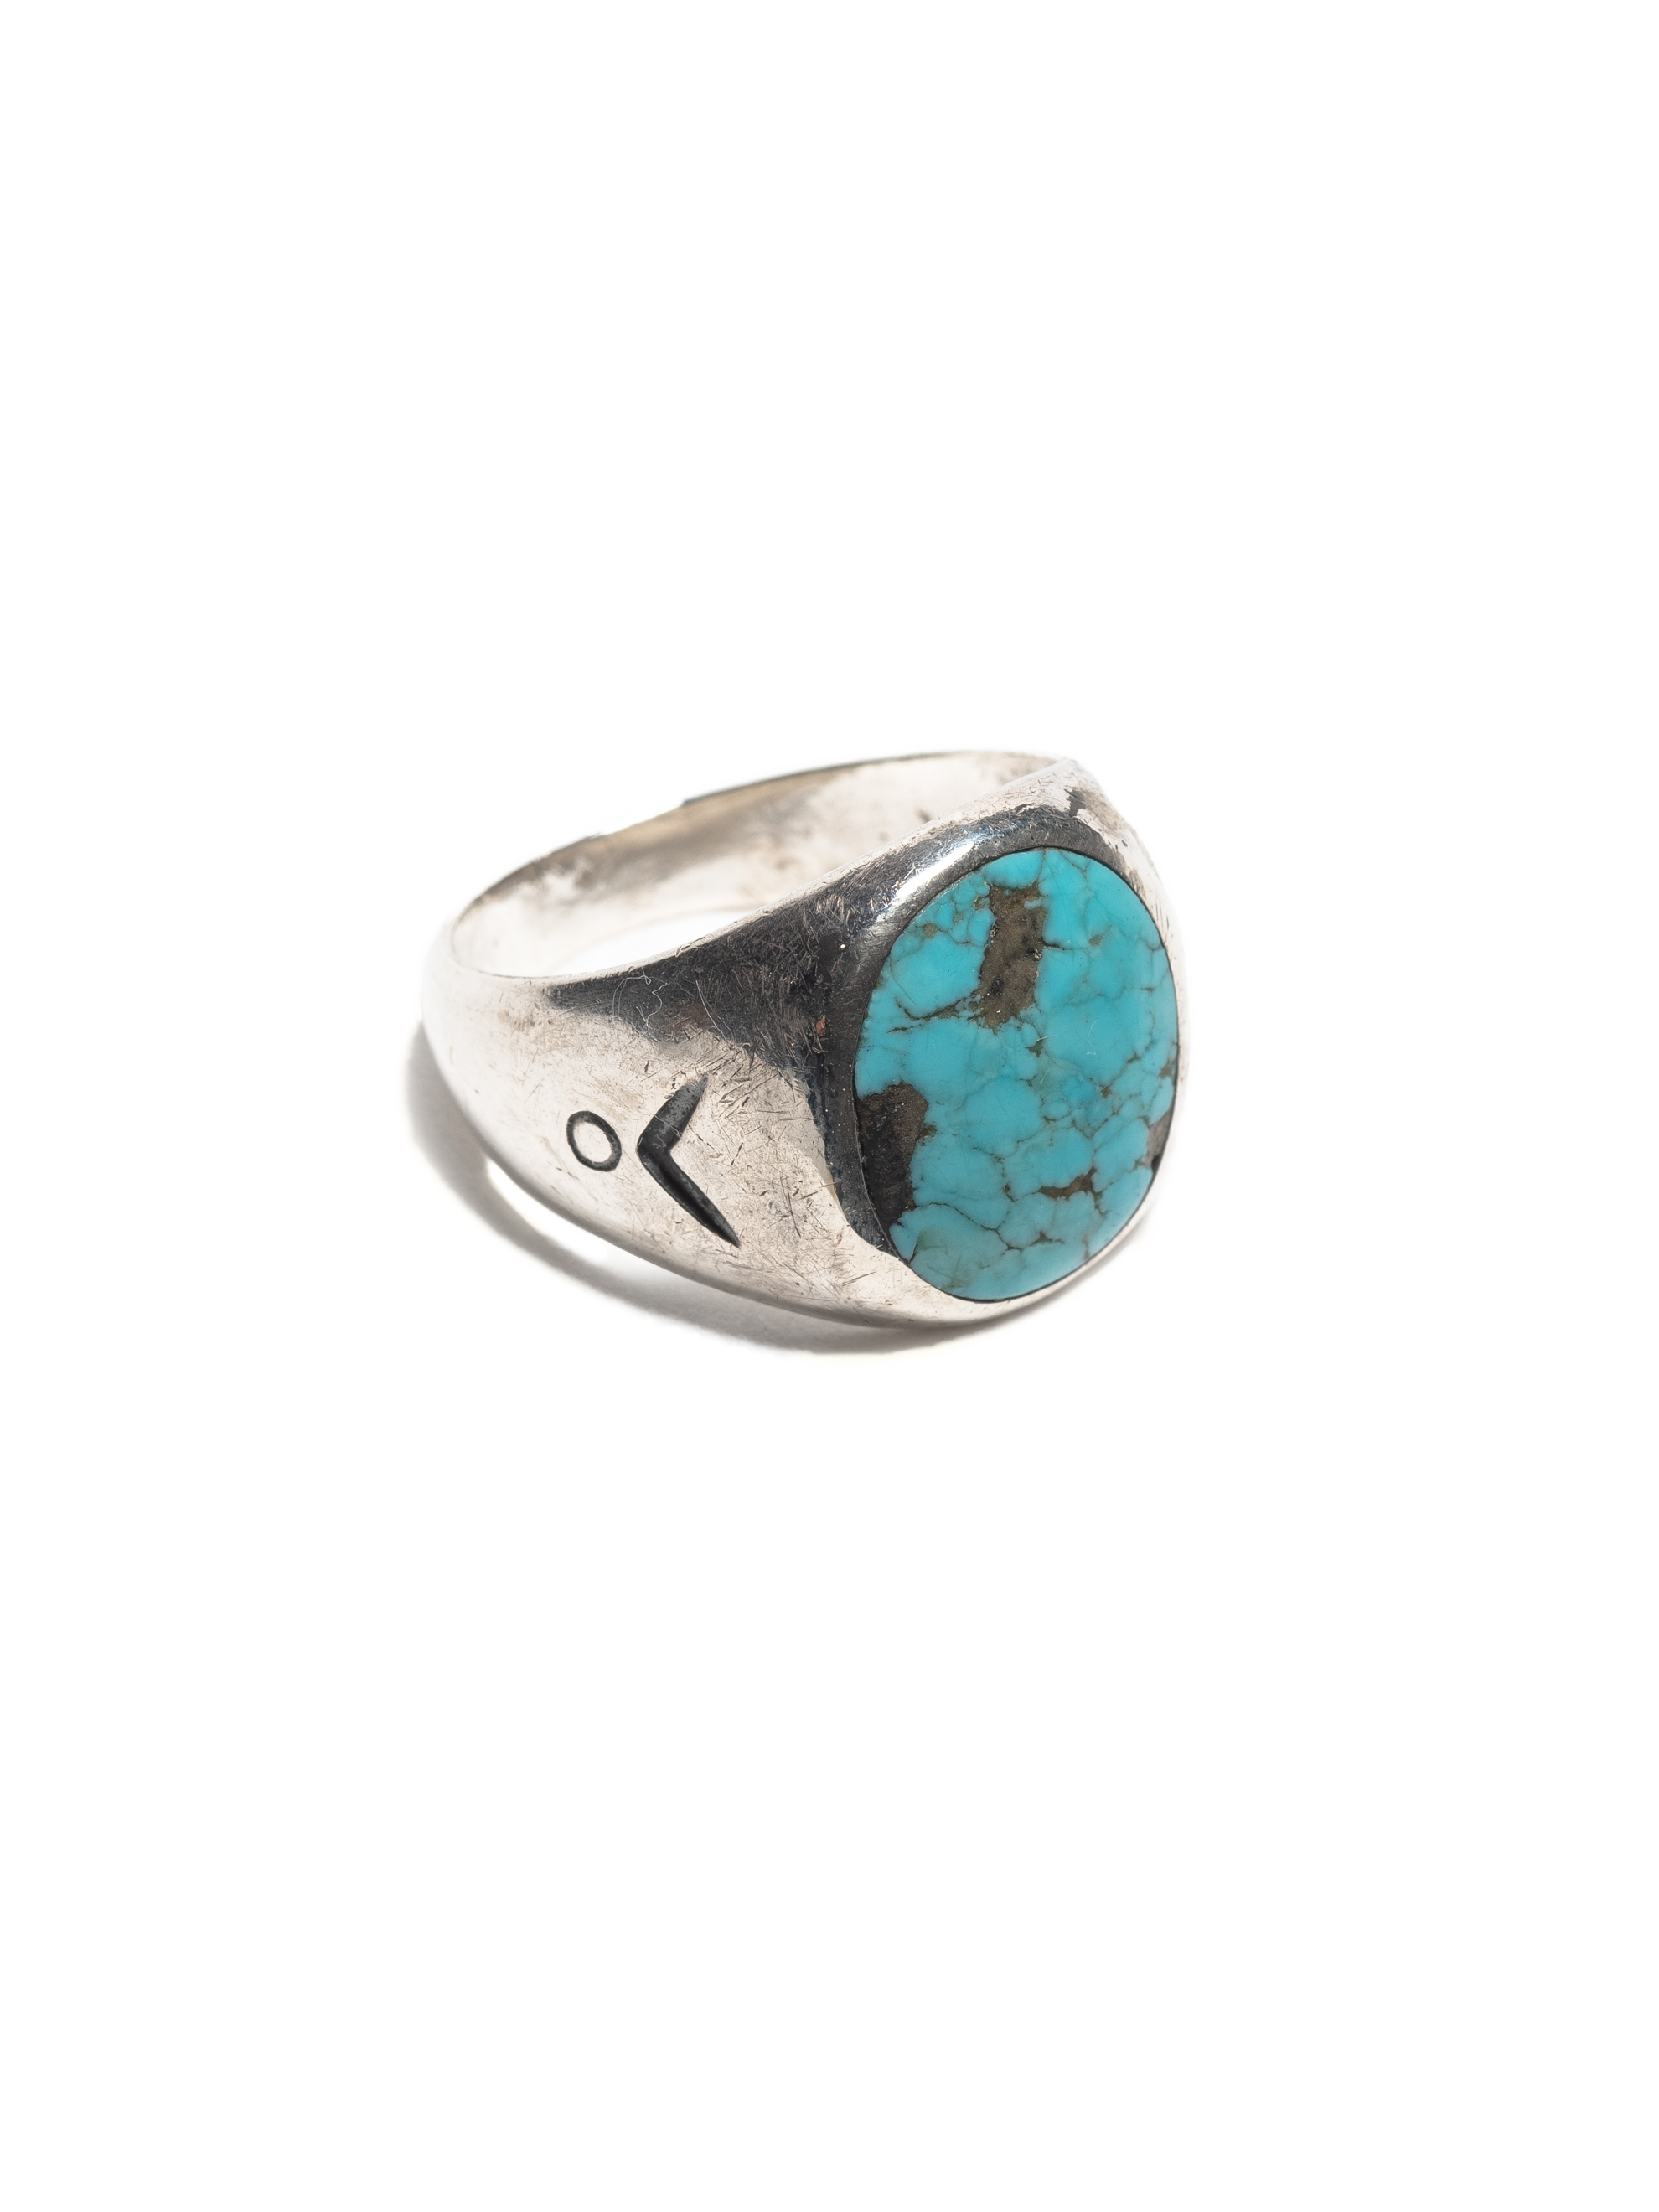 Sterling Silver Vintage Navajo Sterling Men's Ring with hand stamped design & inset turquoise stone 1